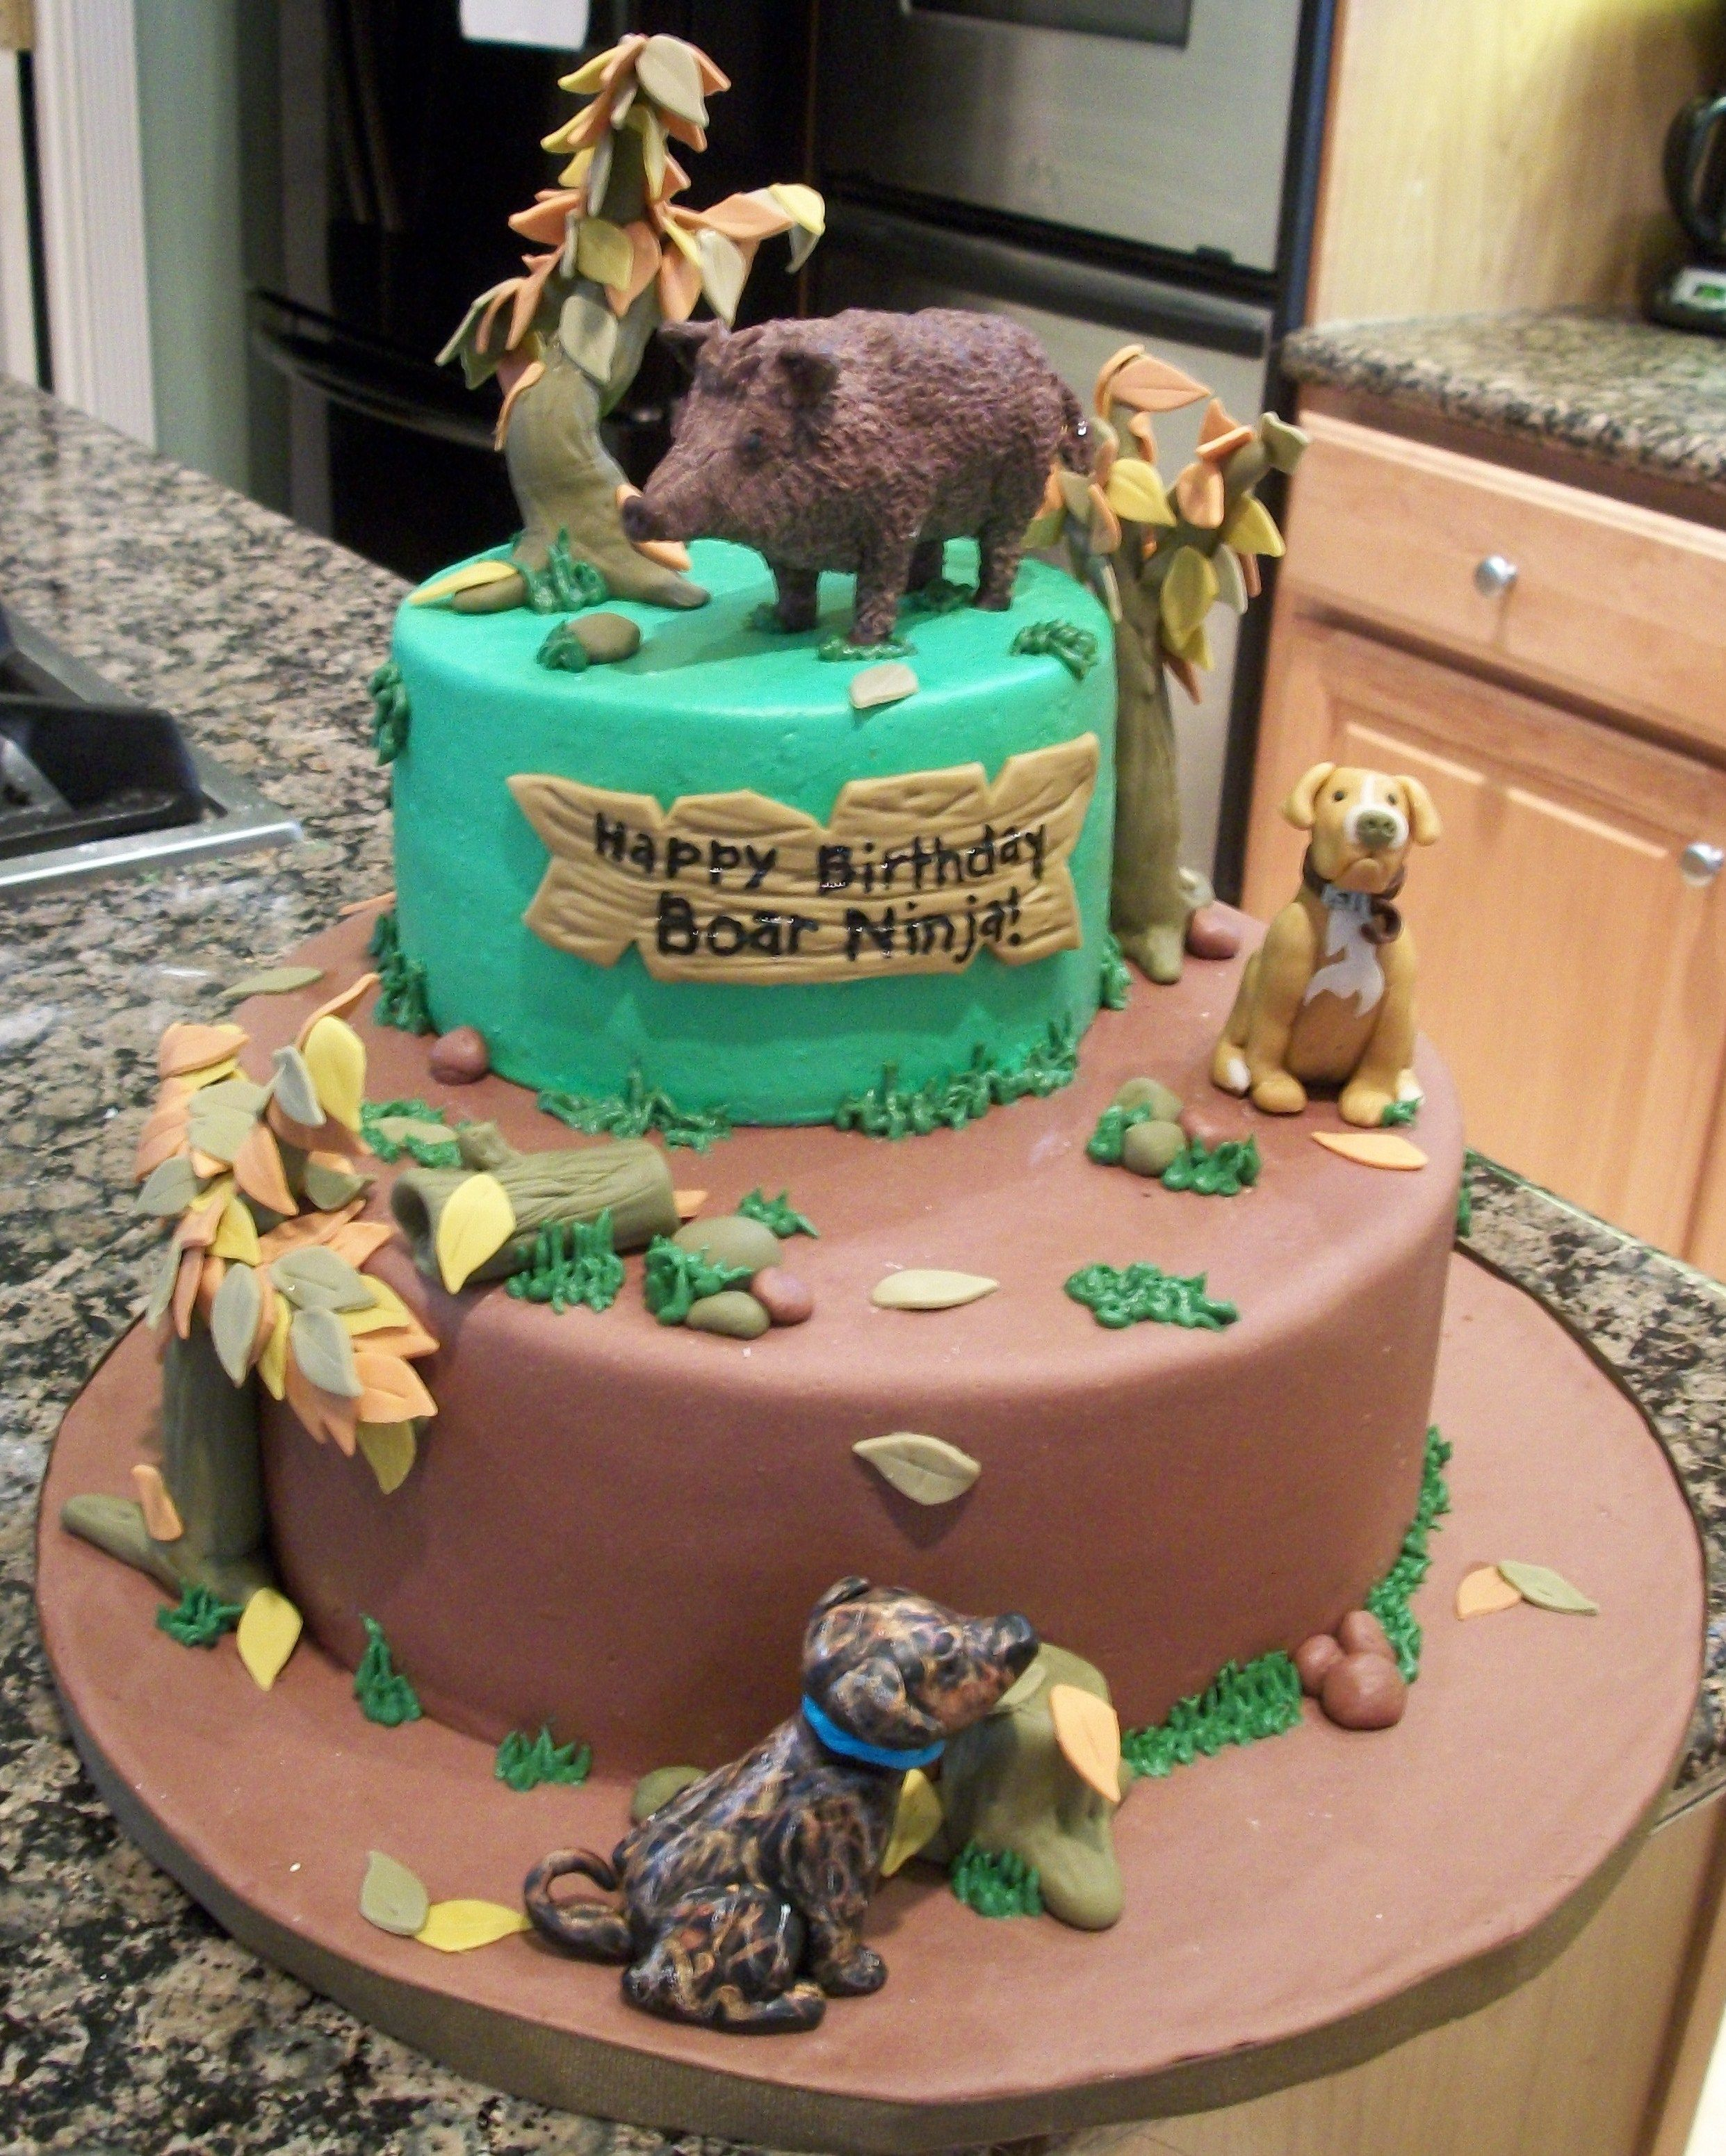 Boar Hunting Birthday Cake Mmf With Modeling Choc Hog And Dogs